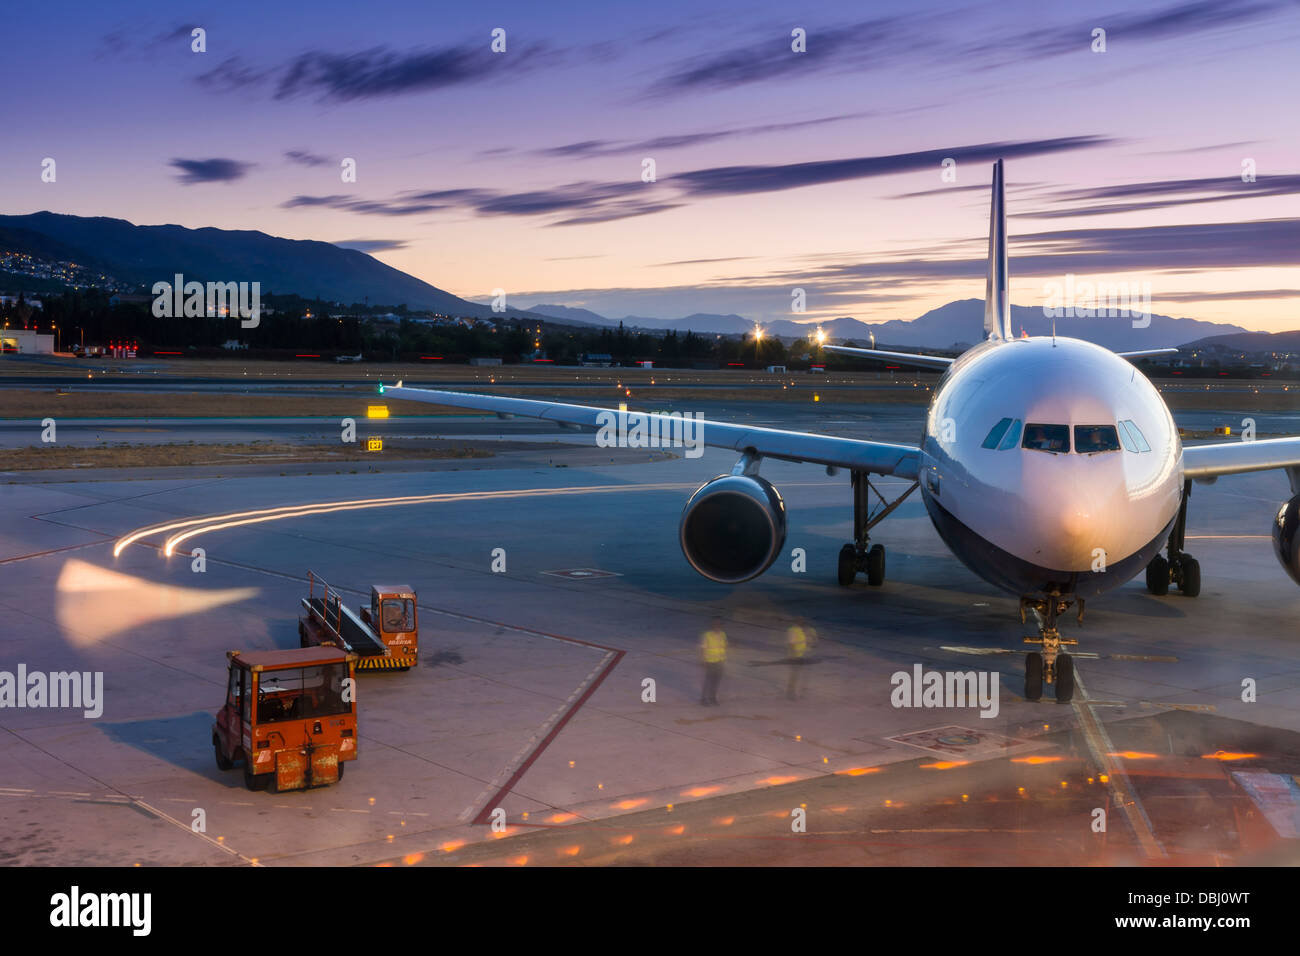 A budget airline prepares it's aircraft for take off from Malaga airport in southern Spain. - Stock Image